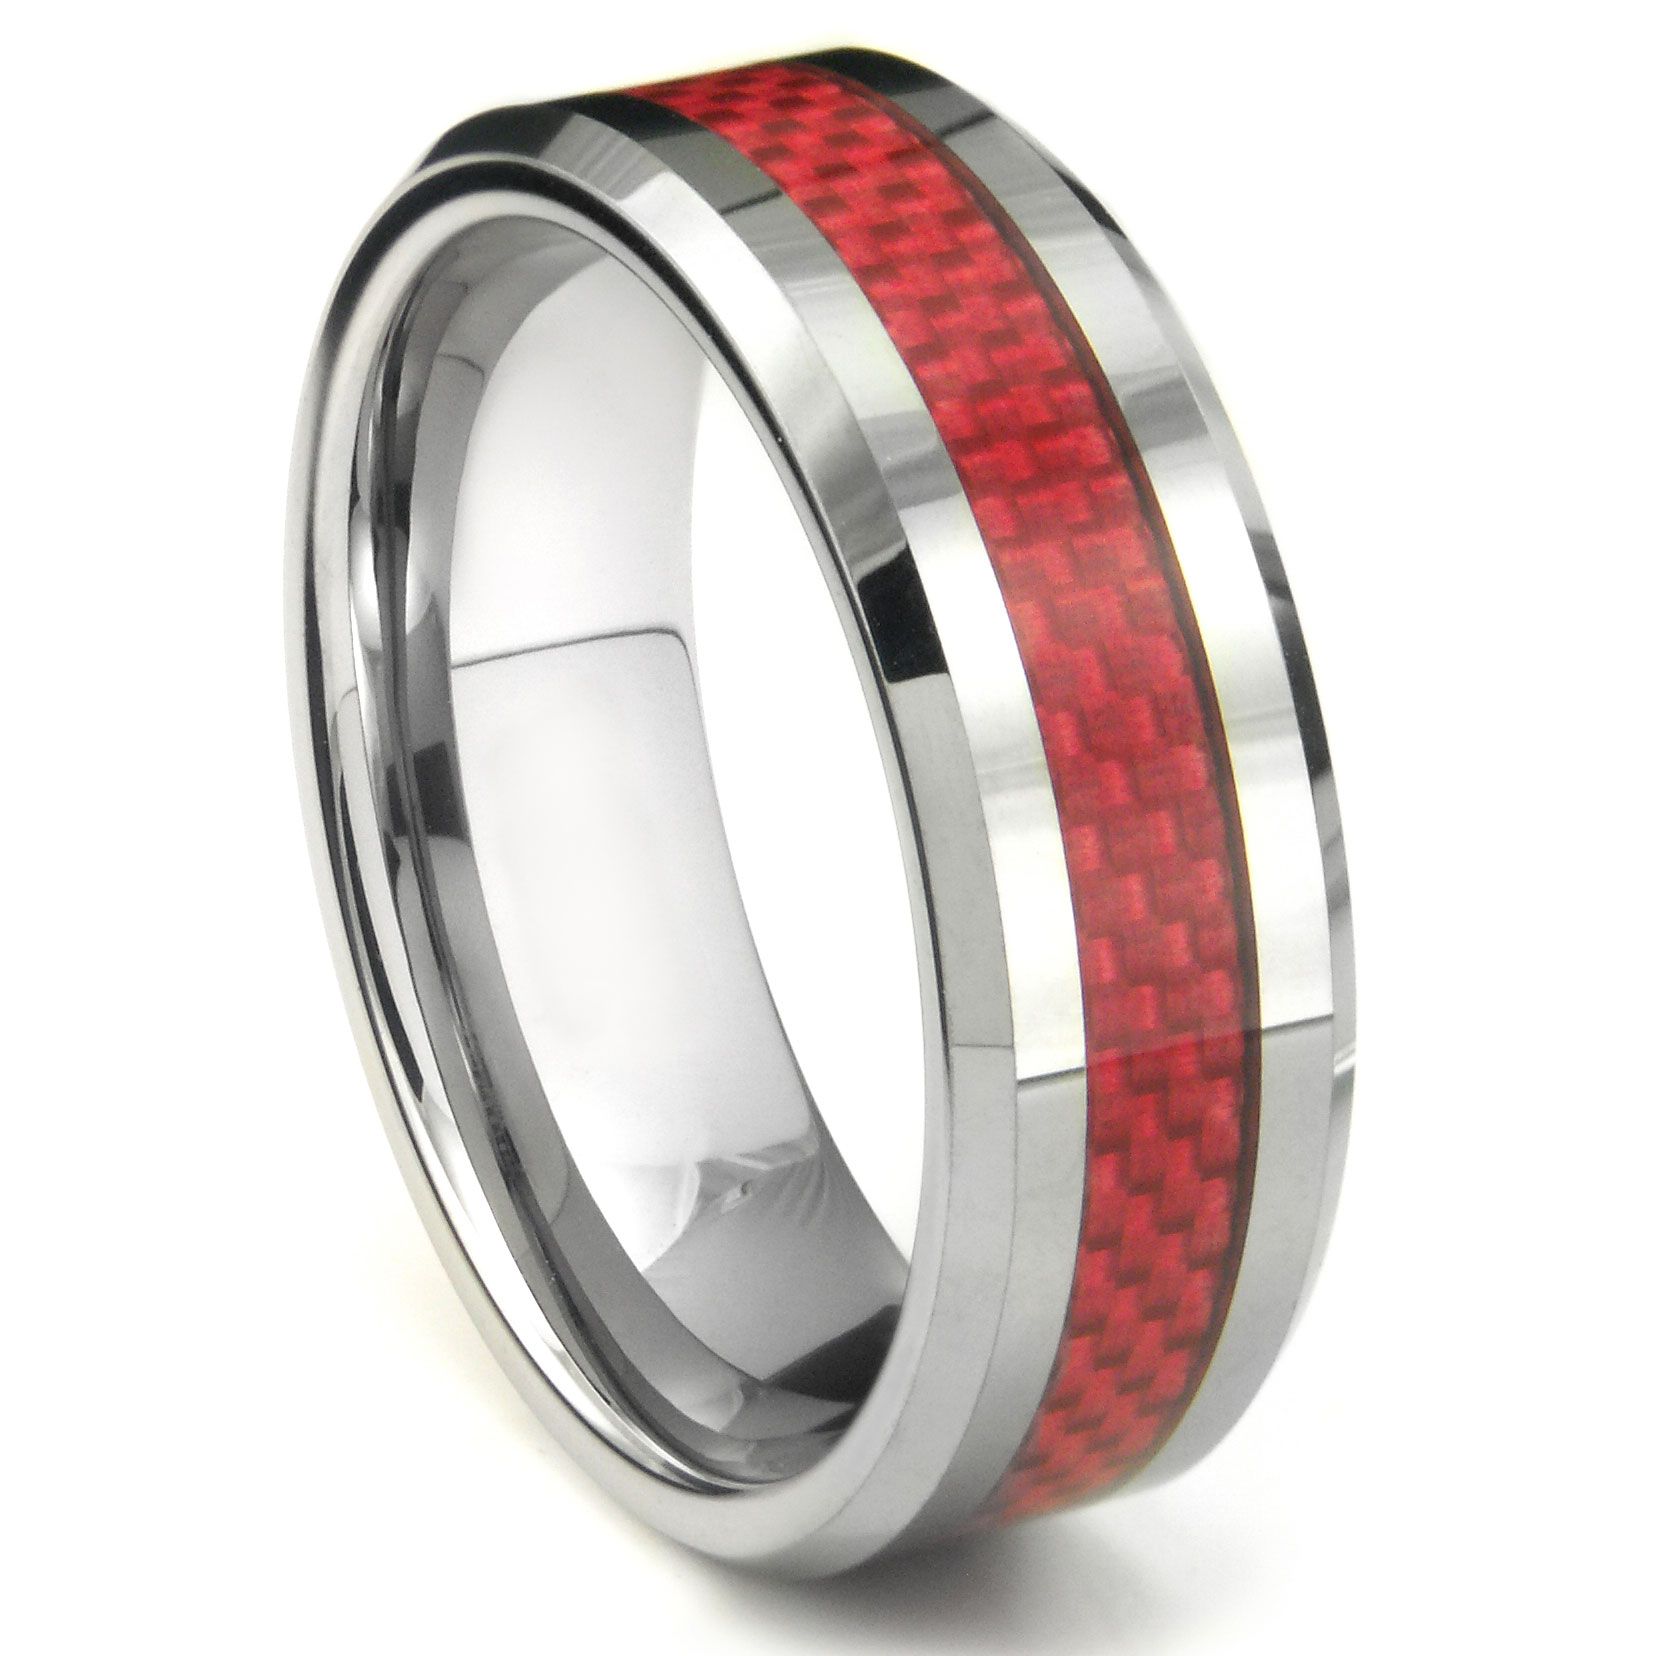 item on accessories style classic enamel silver rock jewelry sterling engagement rings red for black men from in rhinestone moda sales